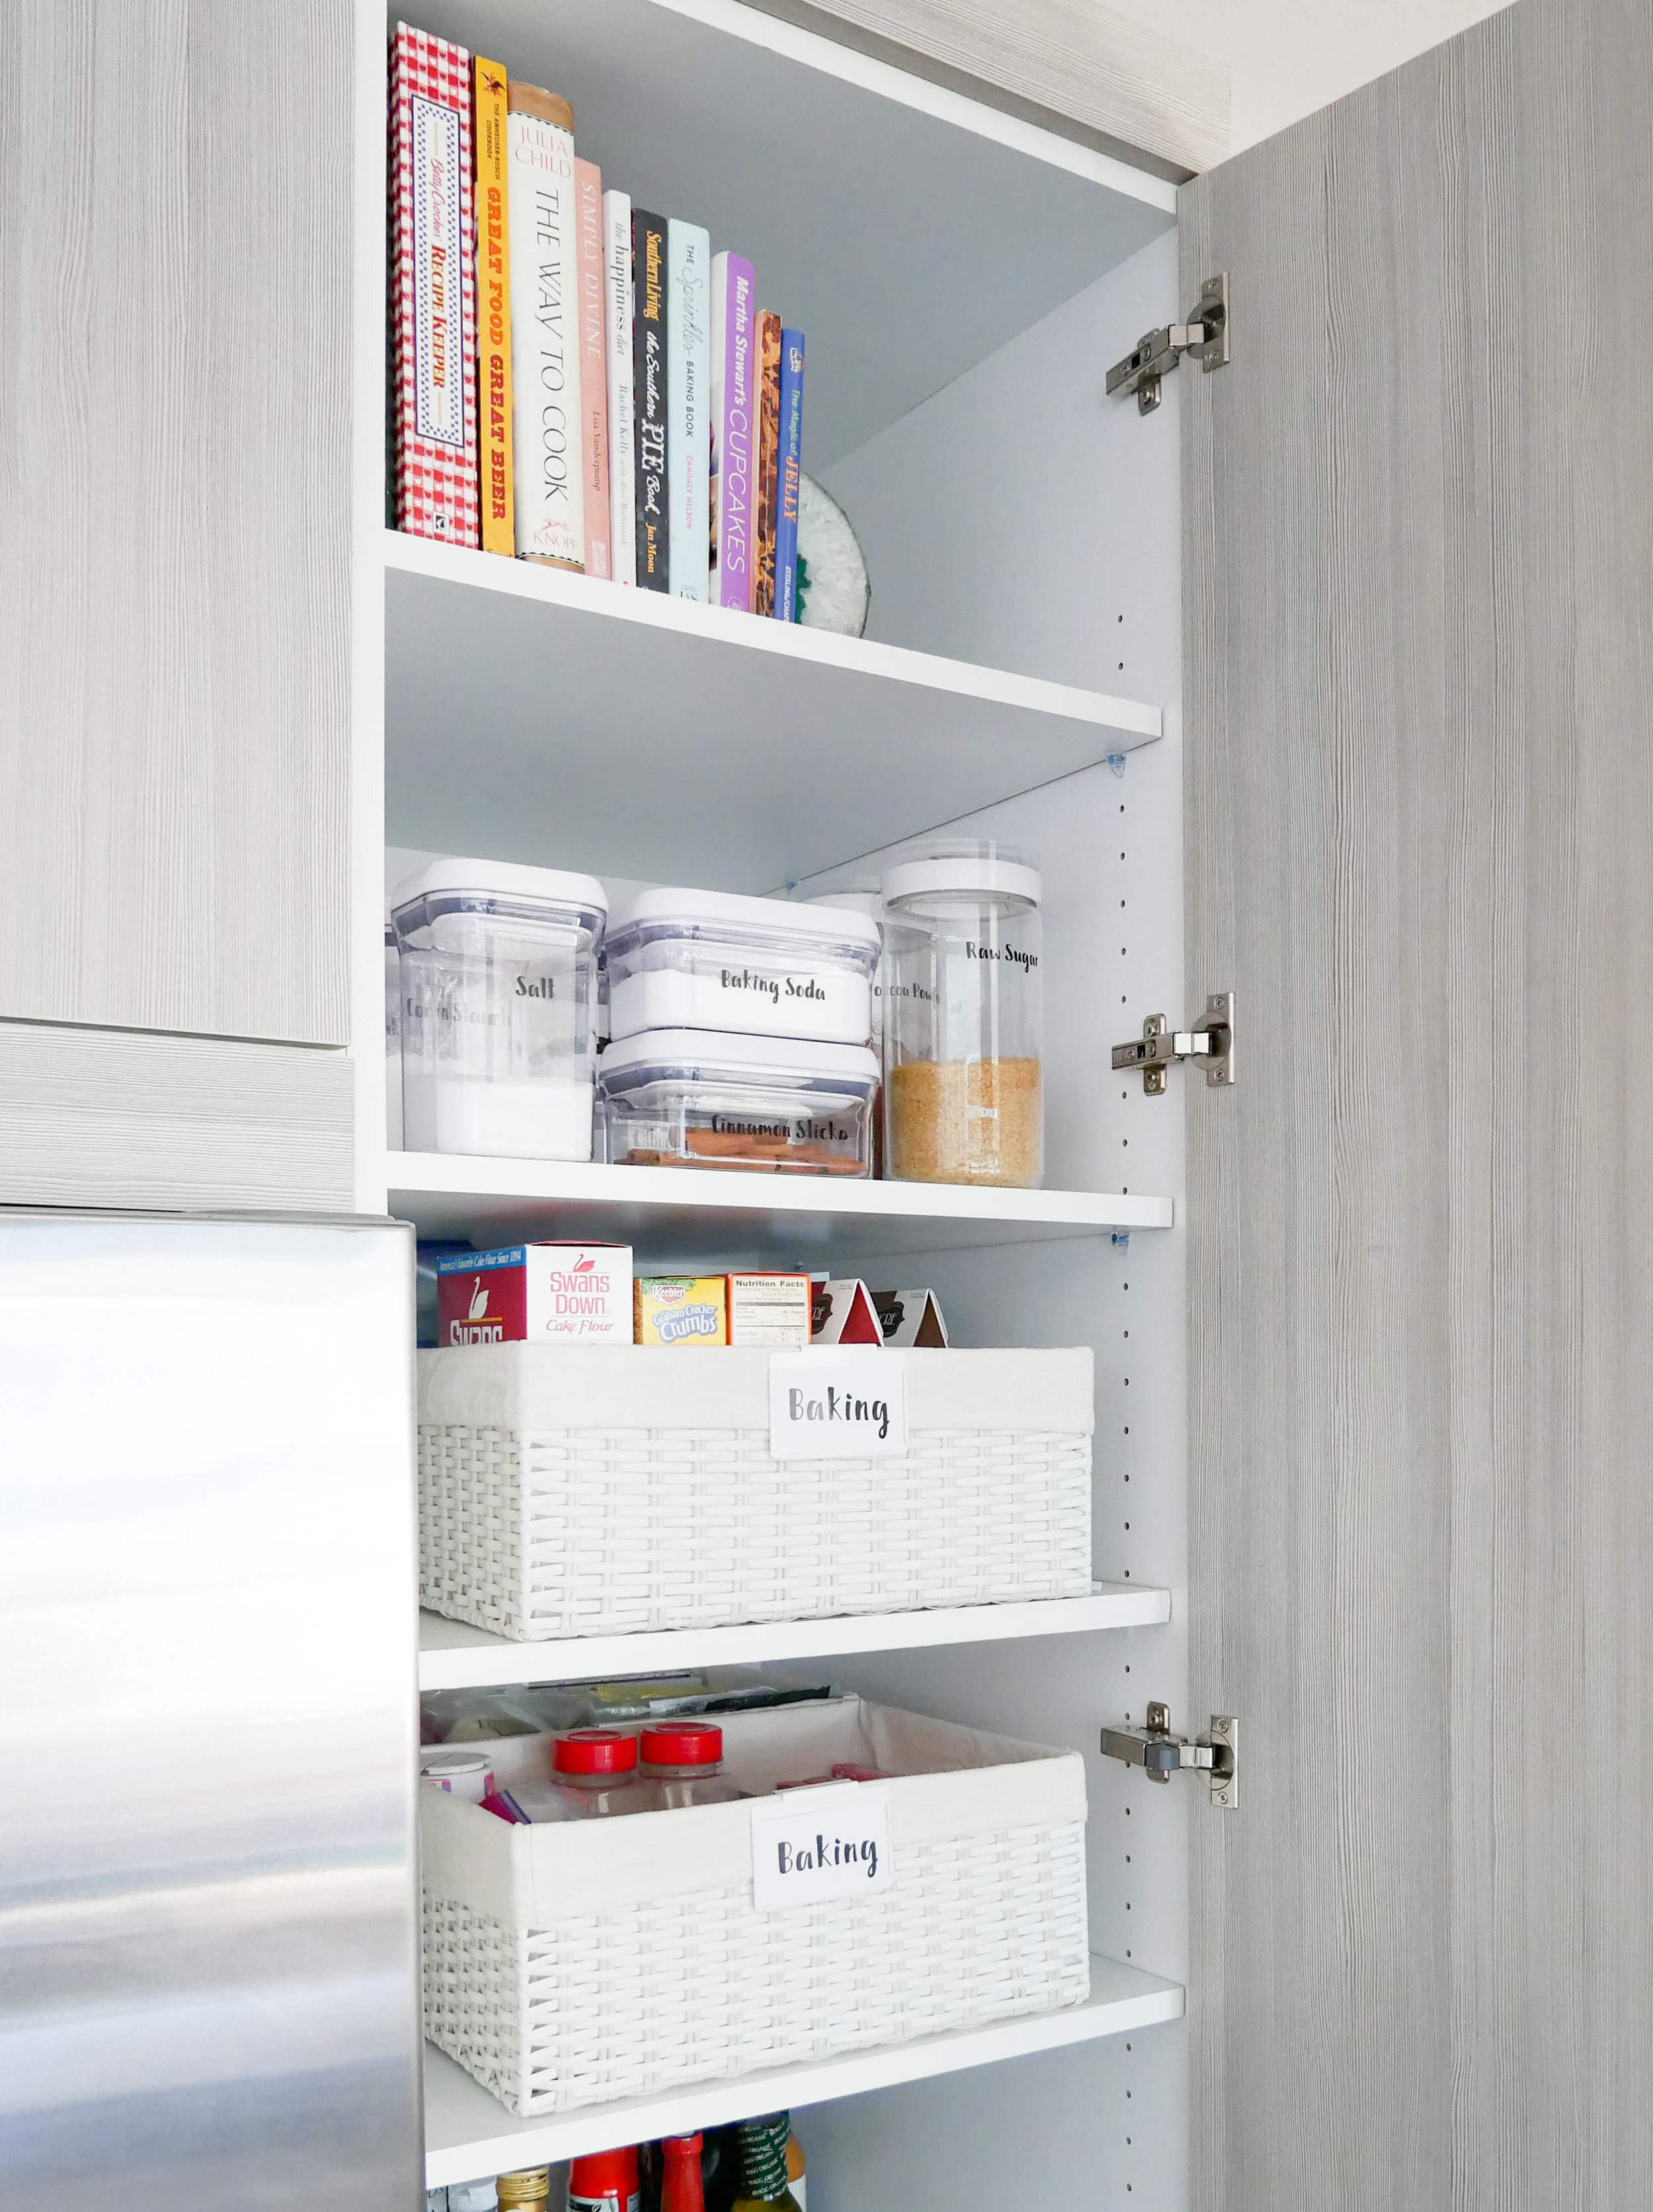 """Each organization project is custom to the individual client's wants, needs and lifestyle. Caitlin is an amazing baker so we made her baking supplies a priority in the """"valuable real estate"""" a.k.a. the eye-level shelves."""